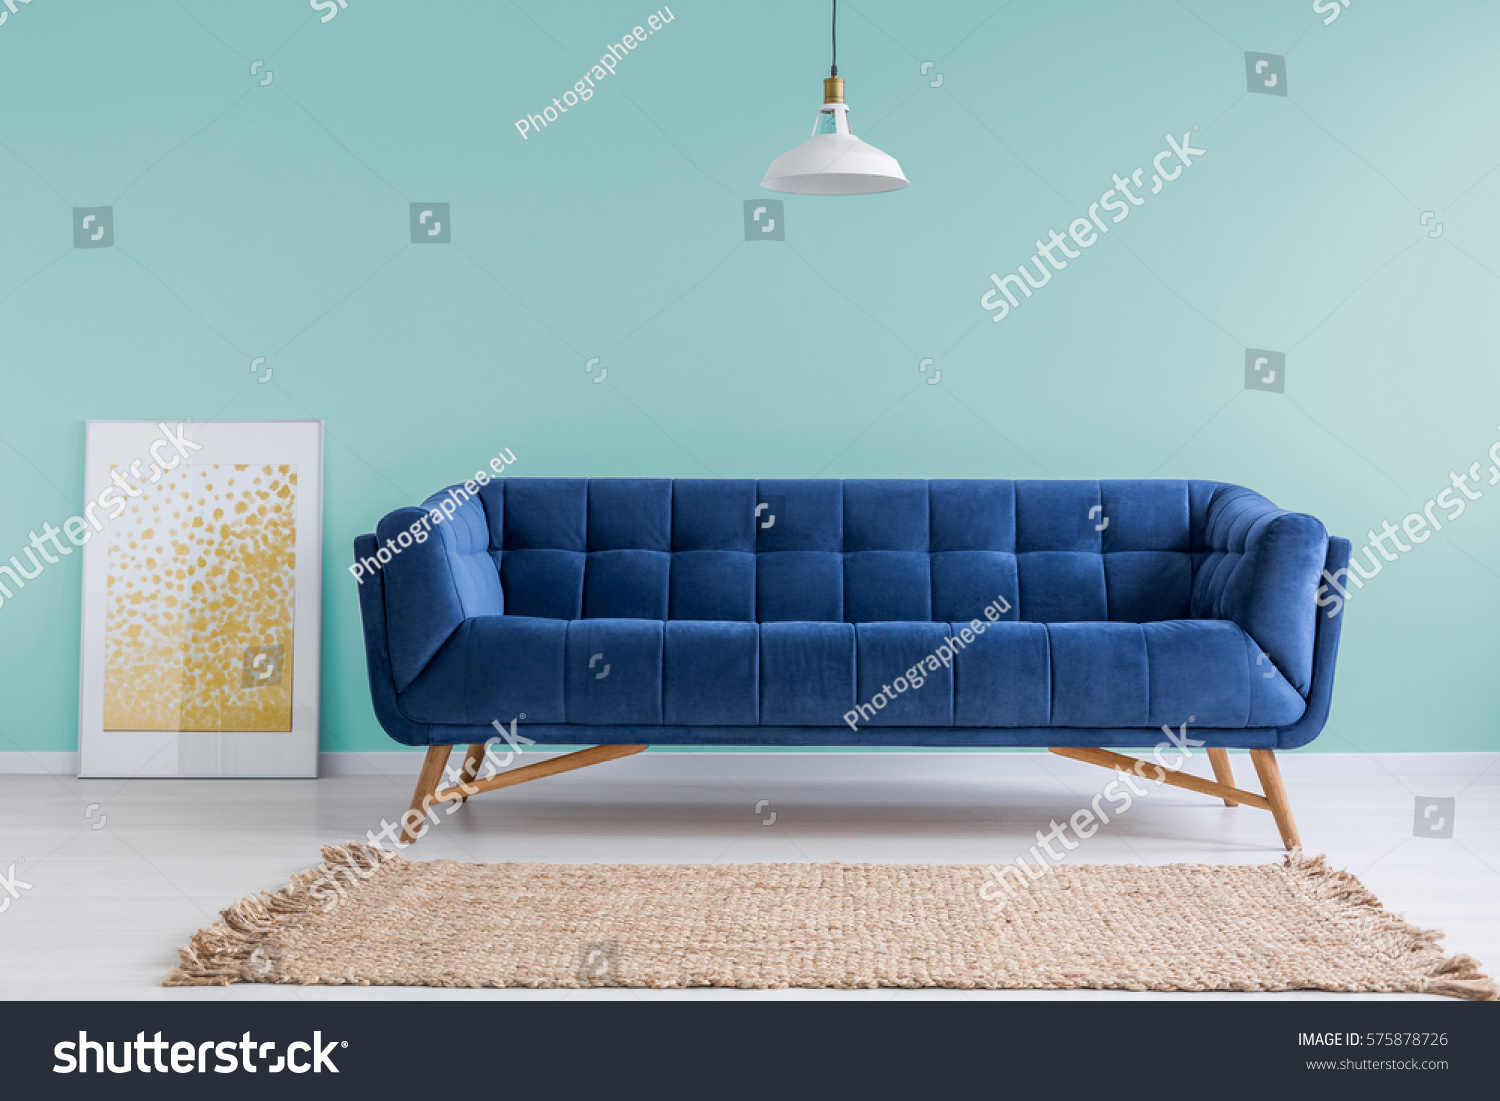 Mint Living Room With Blue Sofa, Rug And Lamp